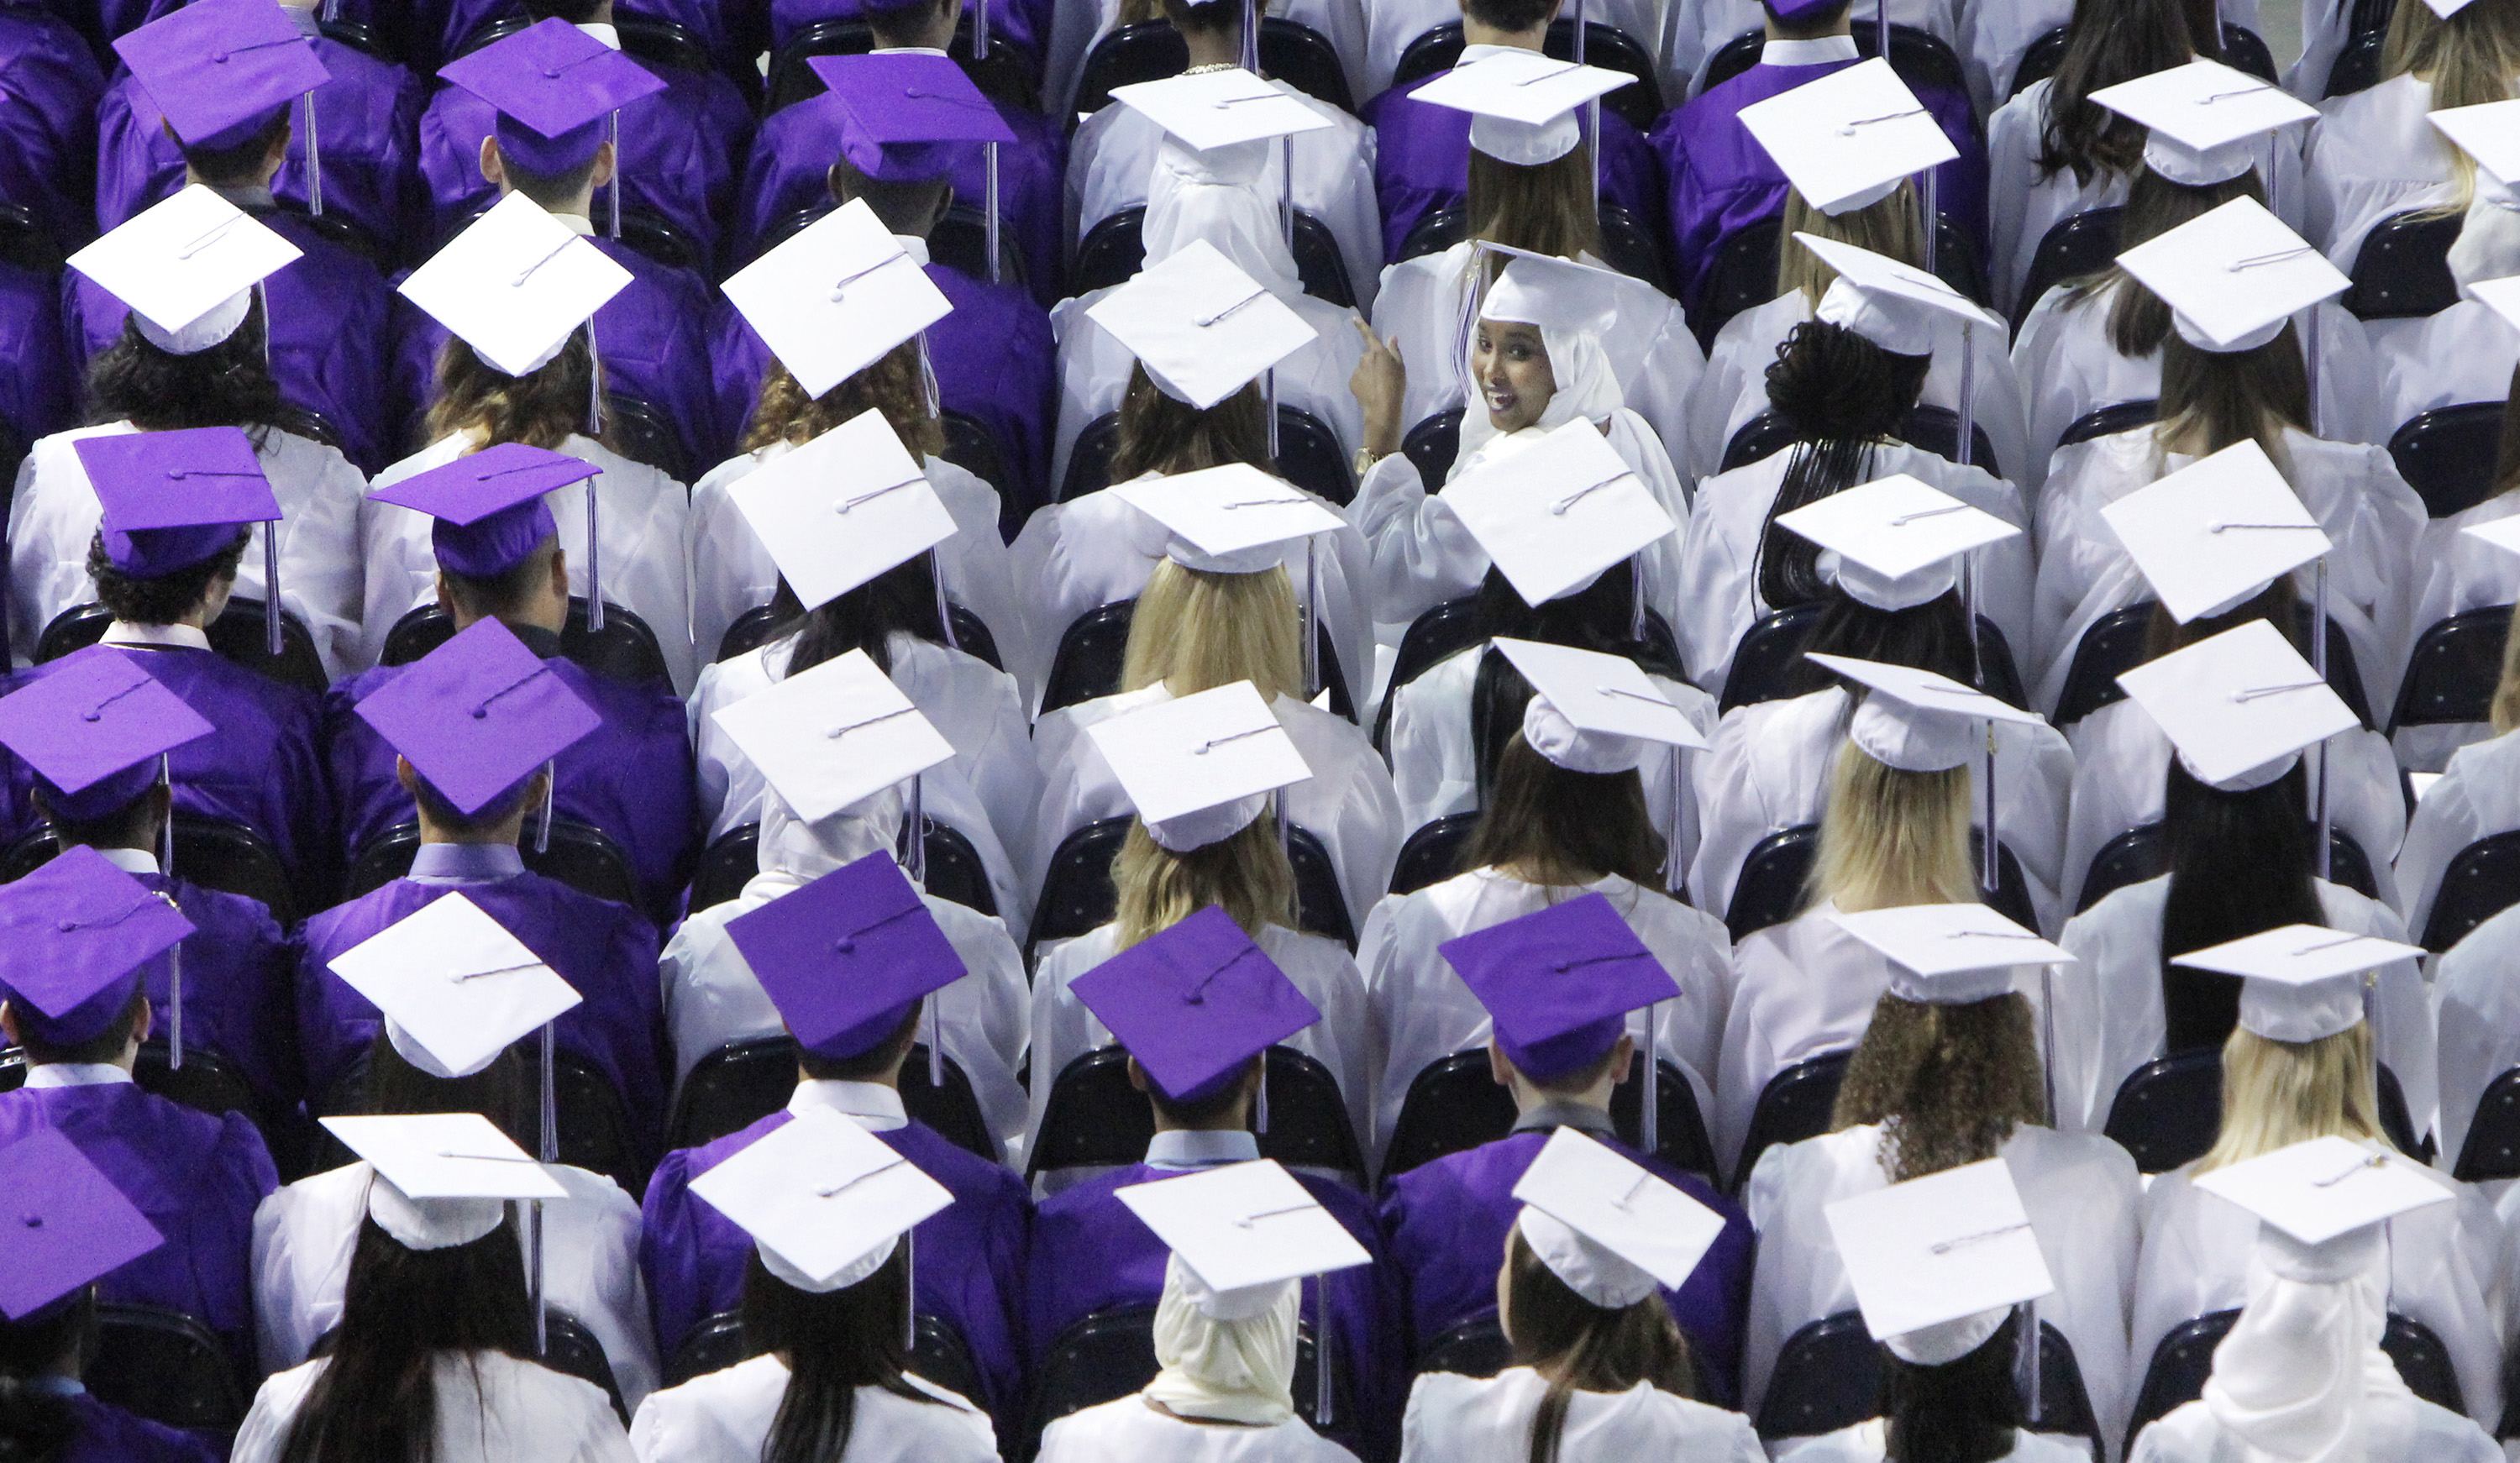 STUDENT VOICE: How I learned to count college value over perceived status